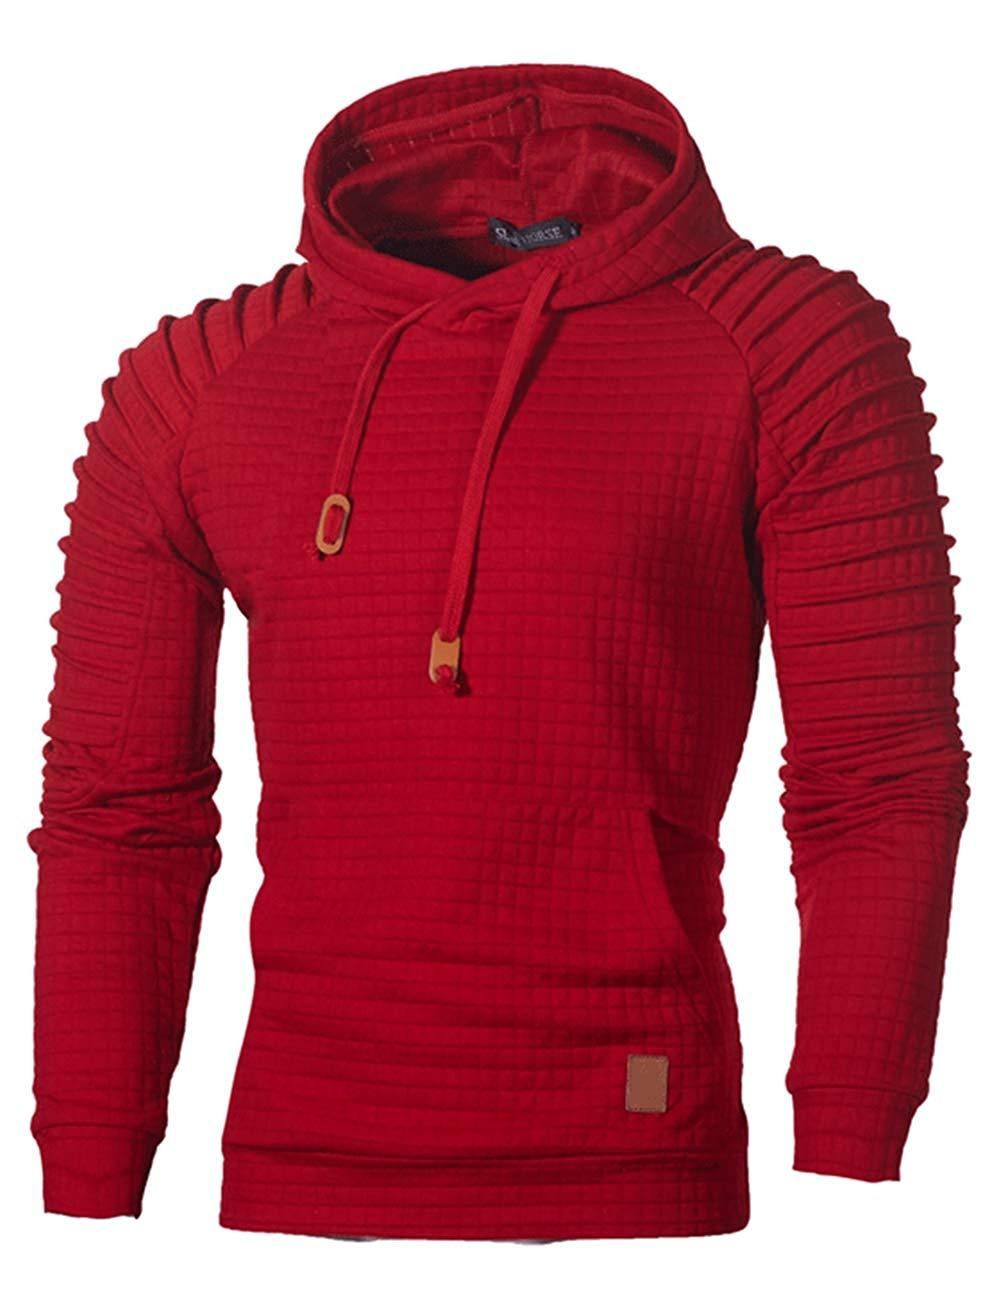 48103ae43 Sexyshine Men's Spring Autumn Winter Casual Long Sleeve Funnel Neck Plaid  Jacquard Pullover Hooded Top Sweatshirt Hoodies